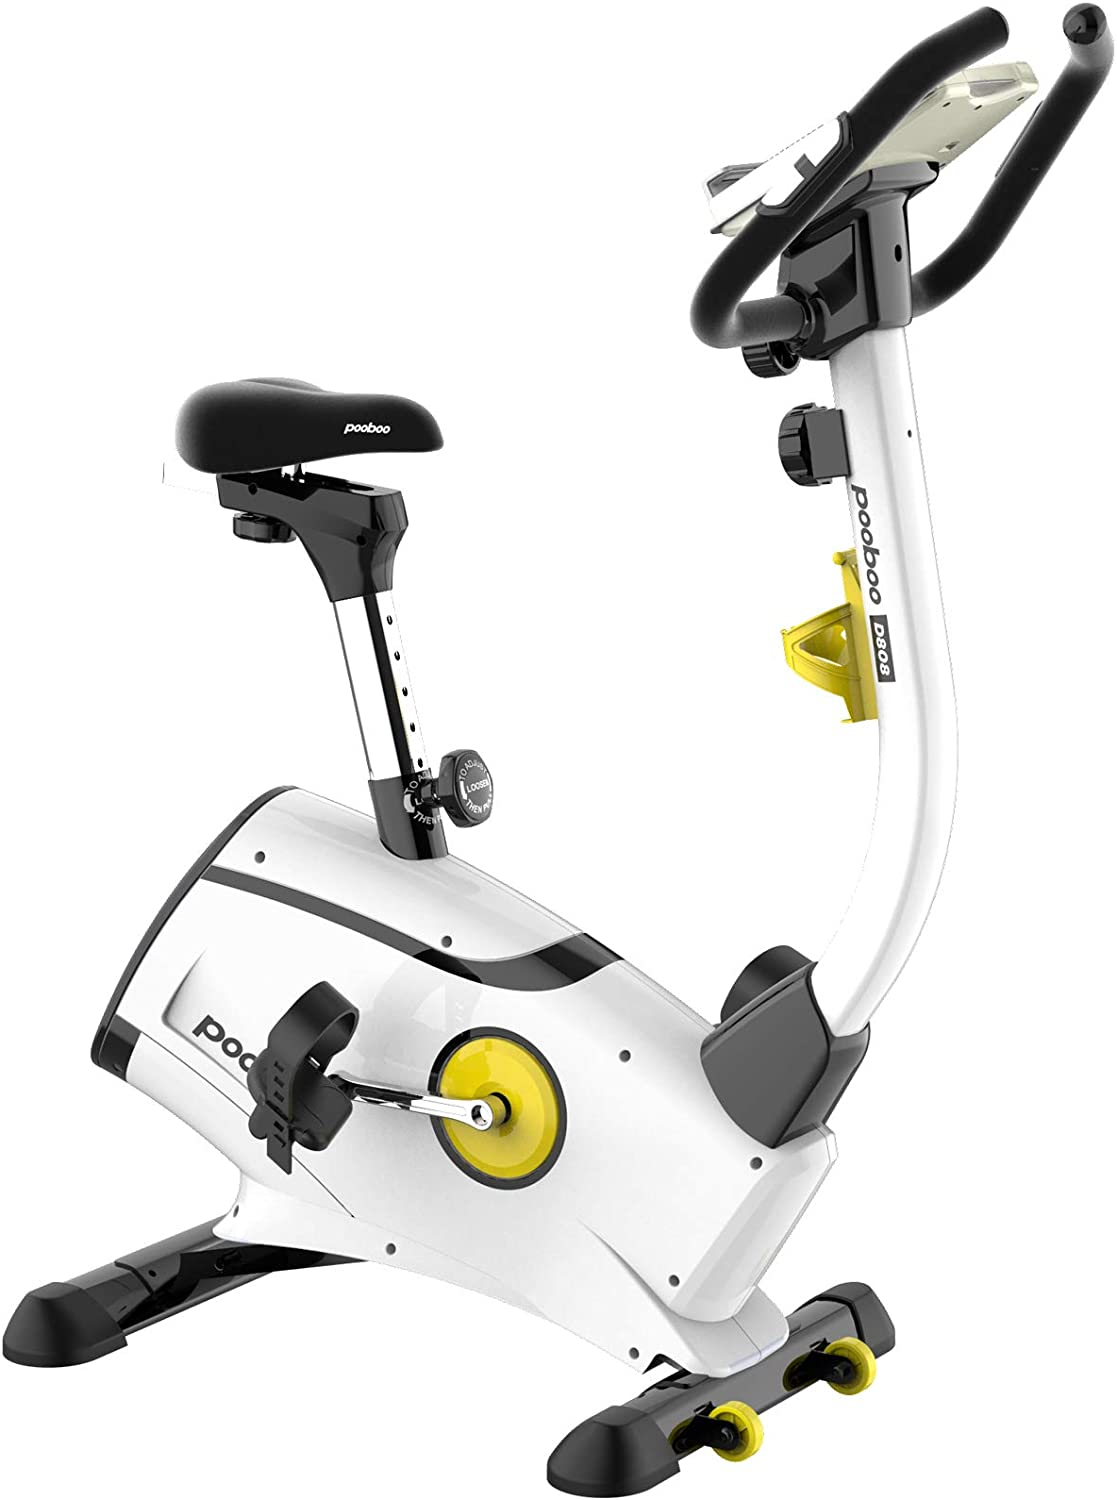 L NOW Exercise Bike, Indoor Cycling Bike, Belt Drive Stationary Bike, Magnetic Resistance Upright Bike With LCD Display for Women Wen Senior Home Office